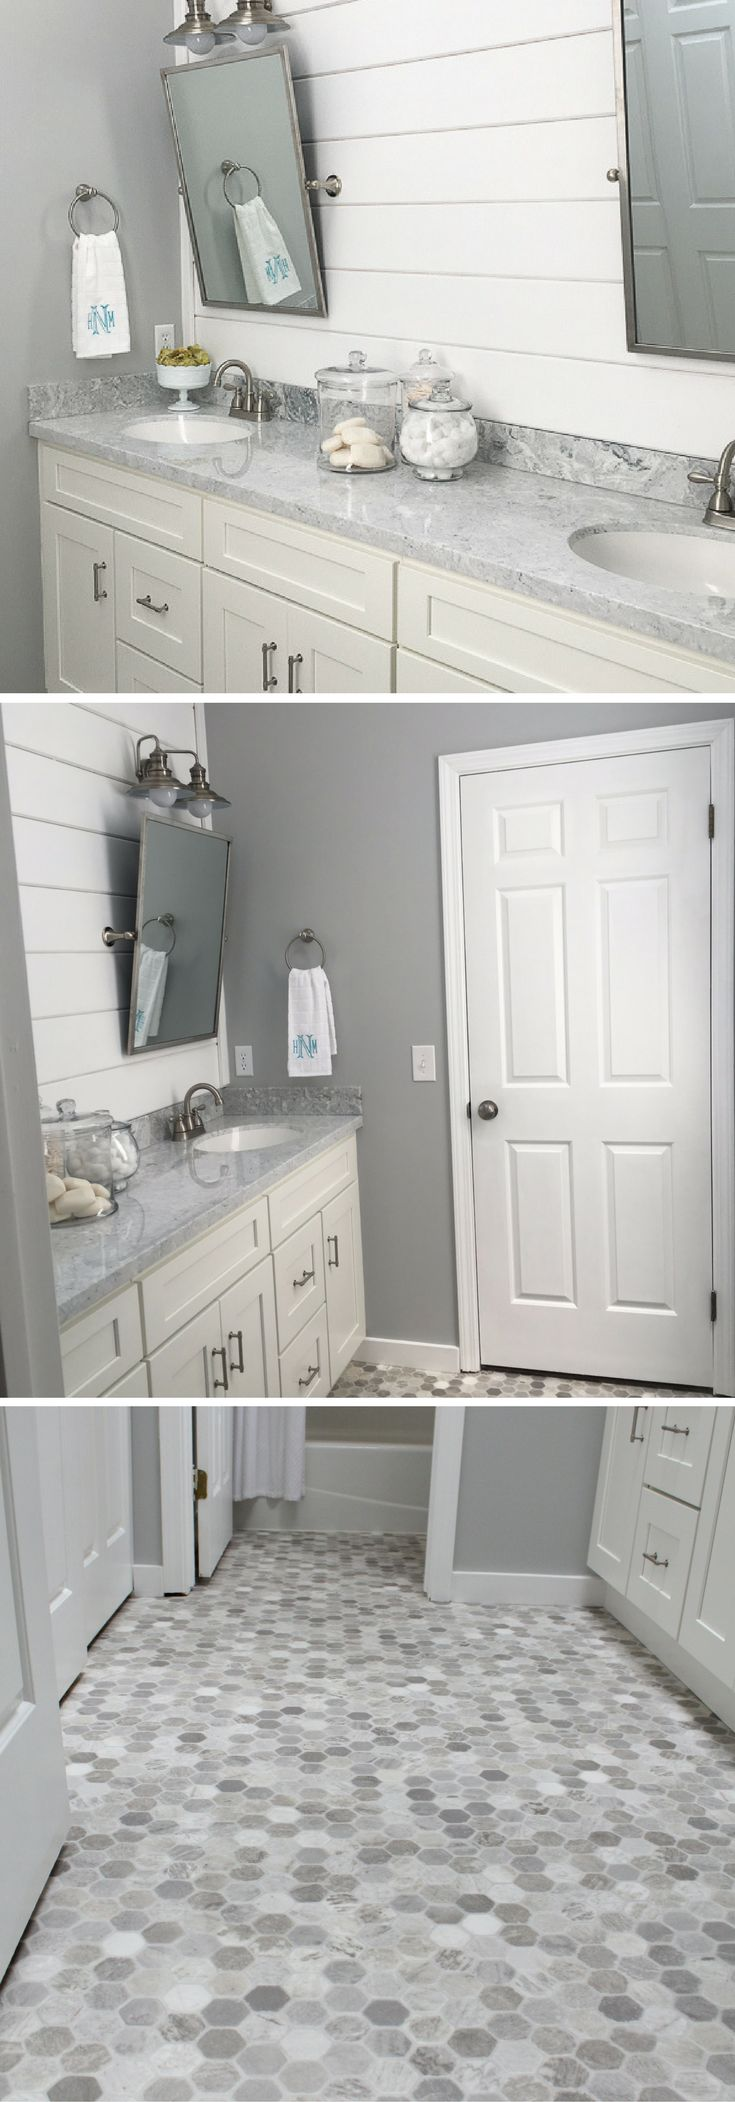 Learn how we renovated our master bathroom on a small budget. We created a custom look with low budget items. We made our white cabinets look custom with a low cost custom vanity top, and we used gray hexagon flooring for the high-end look. #farmhousebathroom #farmhousestyle #bathroomremodel